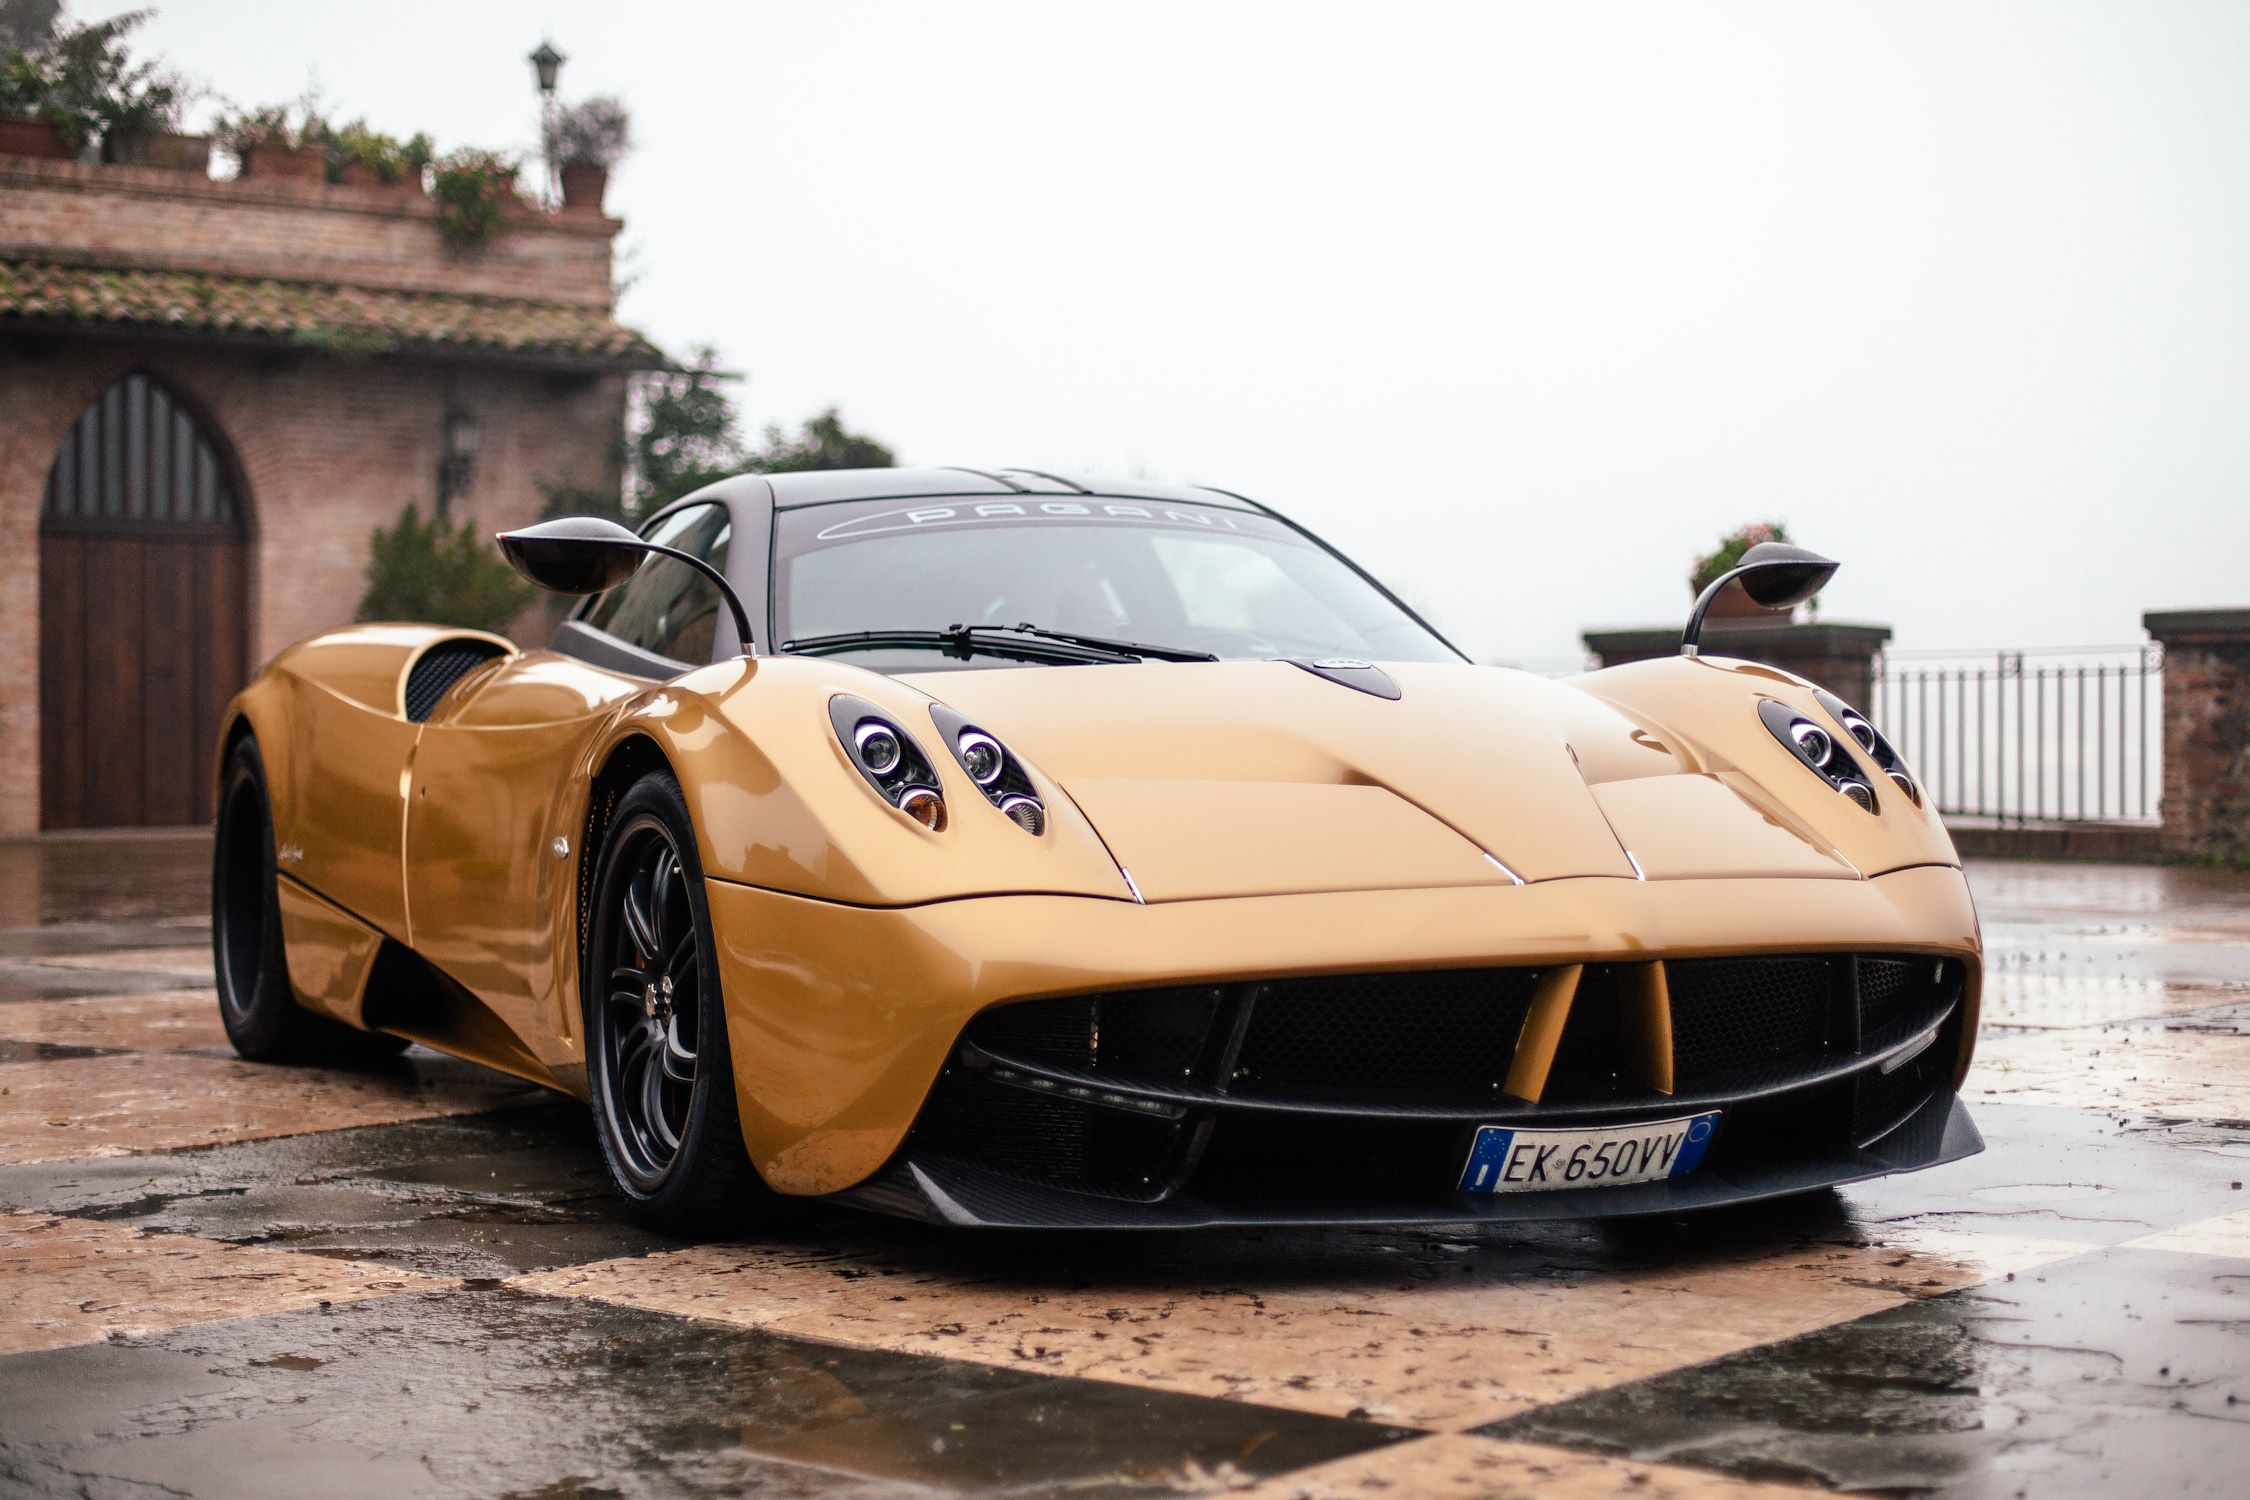 Genial Beau Top 10 Most Expensive Cars In The World In 2017 | Pagani Huayra,  Expensive